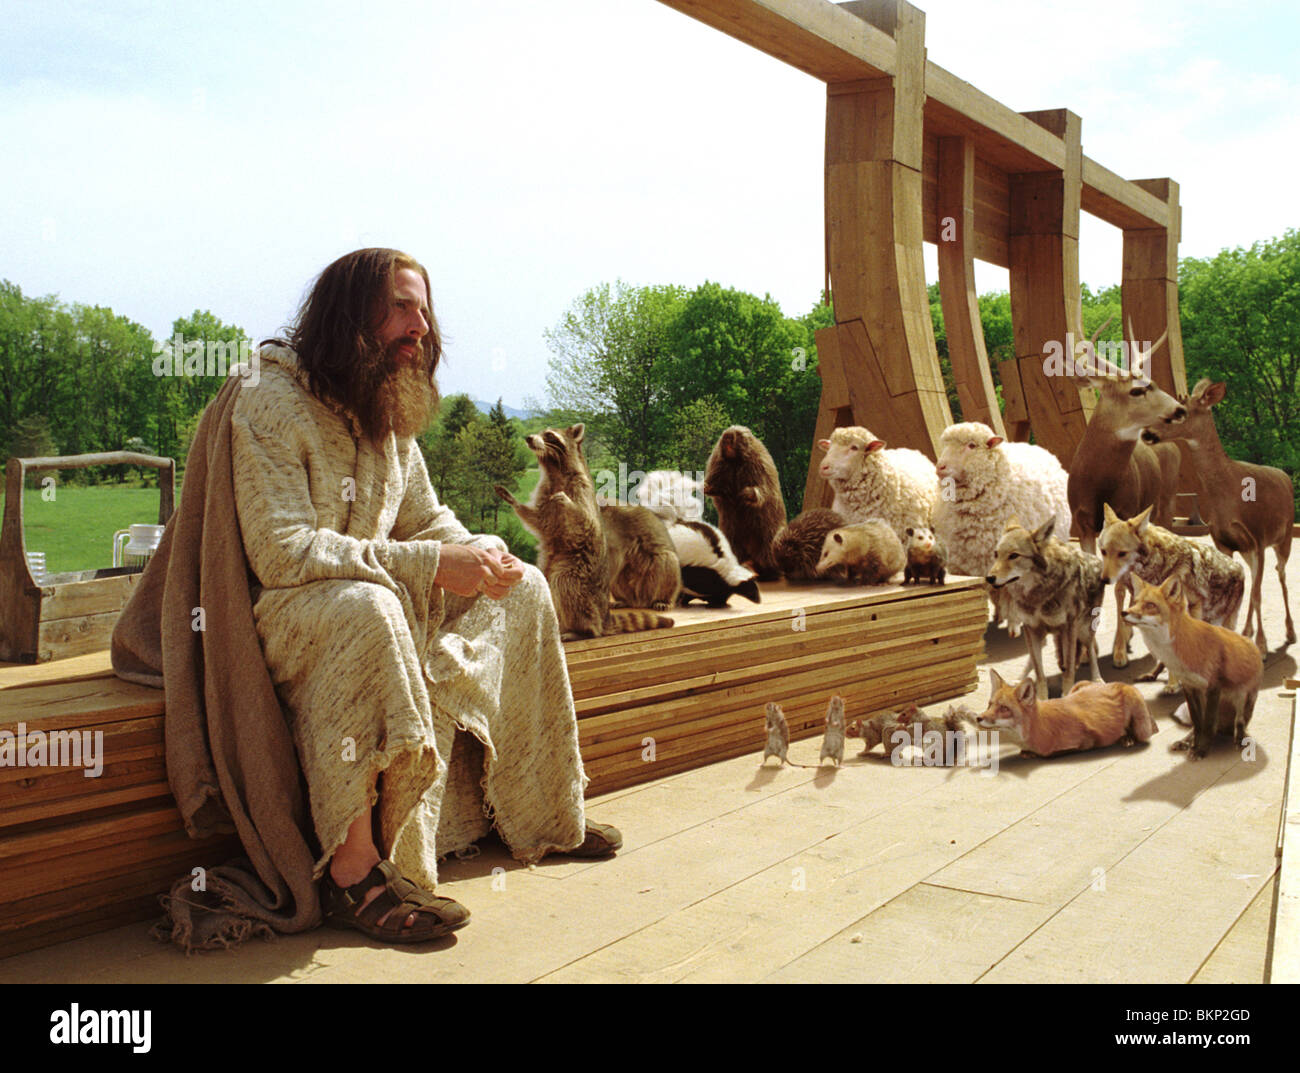 EVAN ALMIGHTY (2007) STEVE CARELL EVAL 001-20 - Stock Image